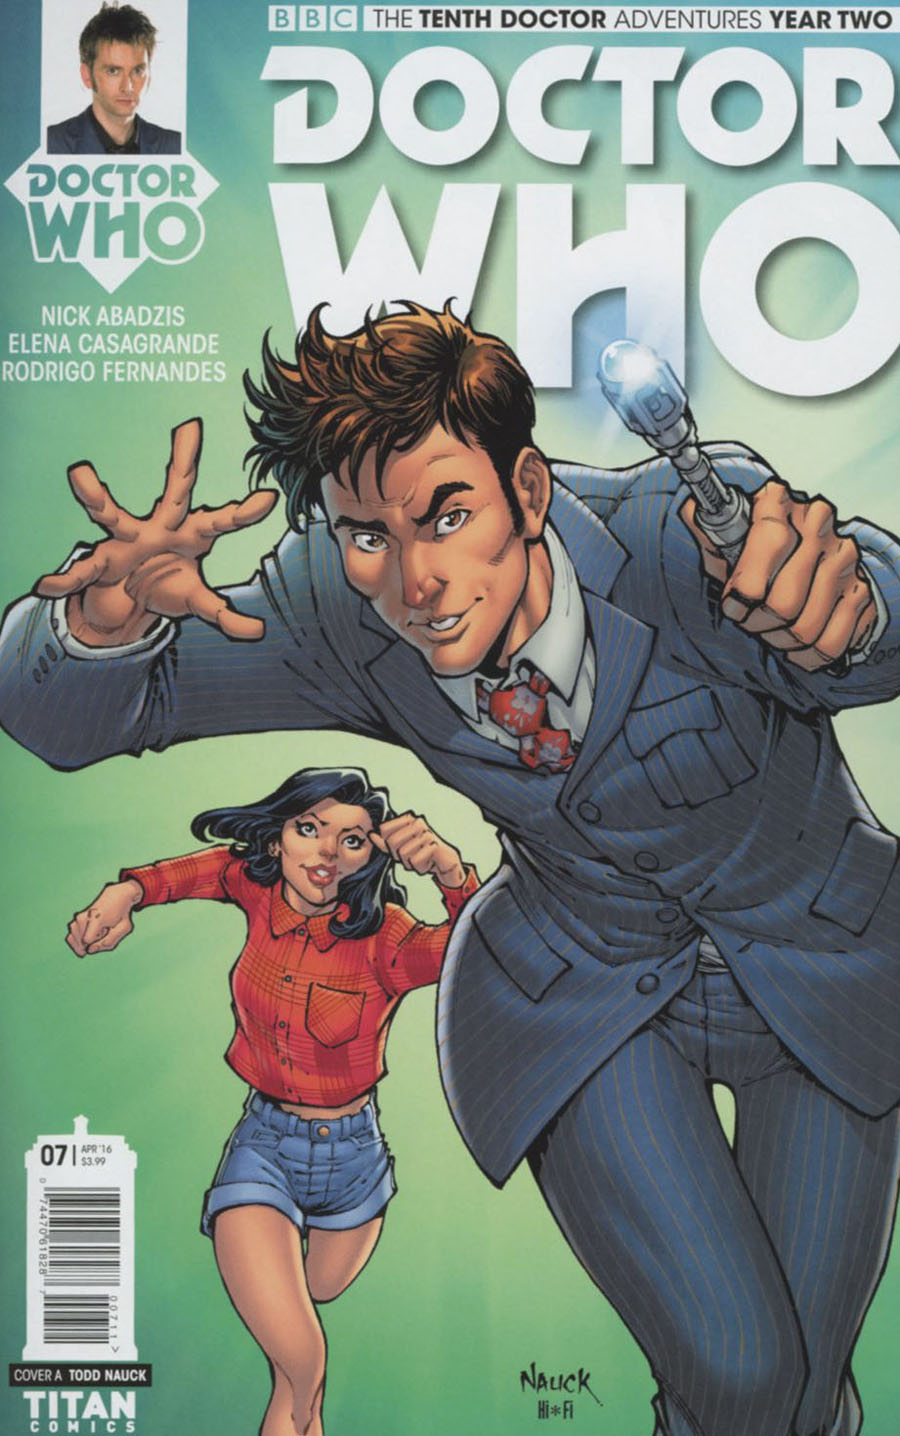 Doctor Who 10th Doctor Year Two #7 Cover A Regular Todd Nauck Cover